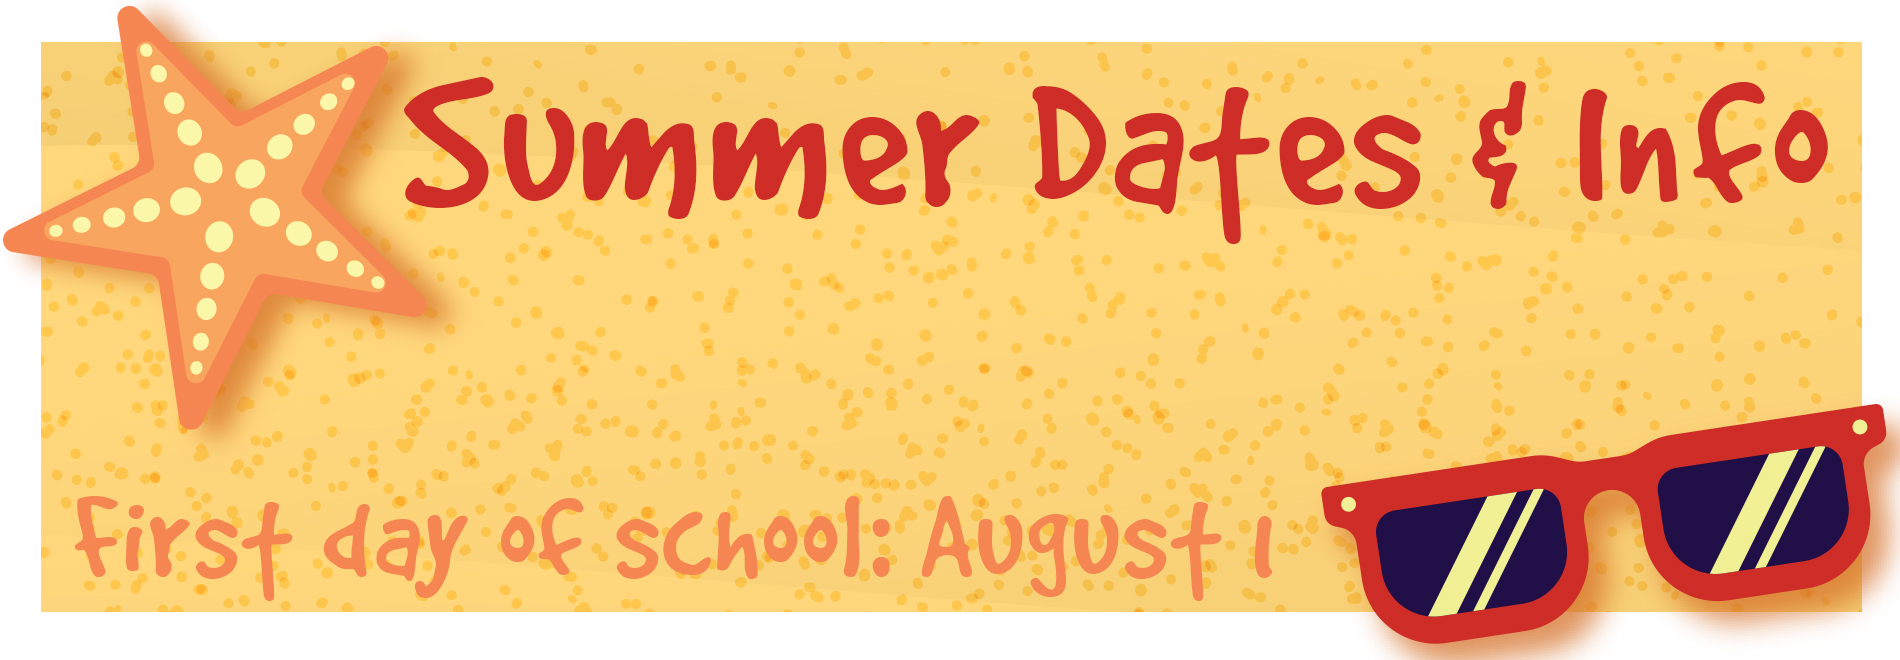 Summer Dates and Information